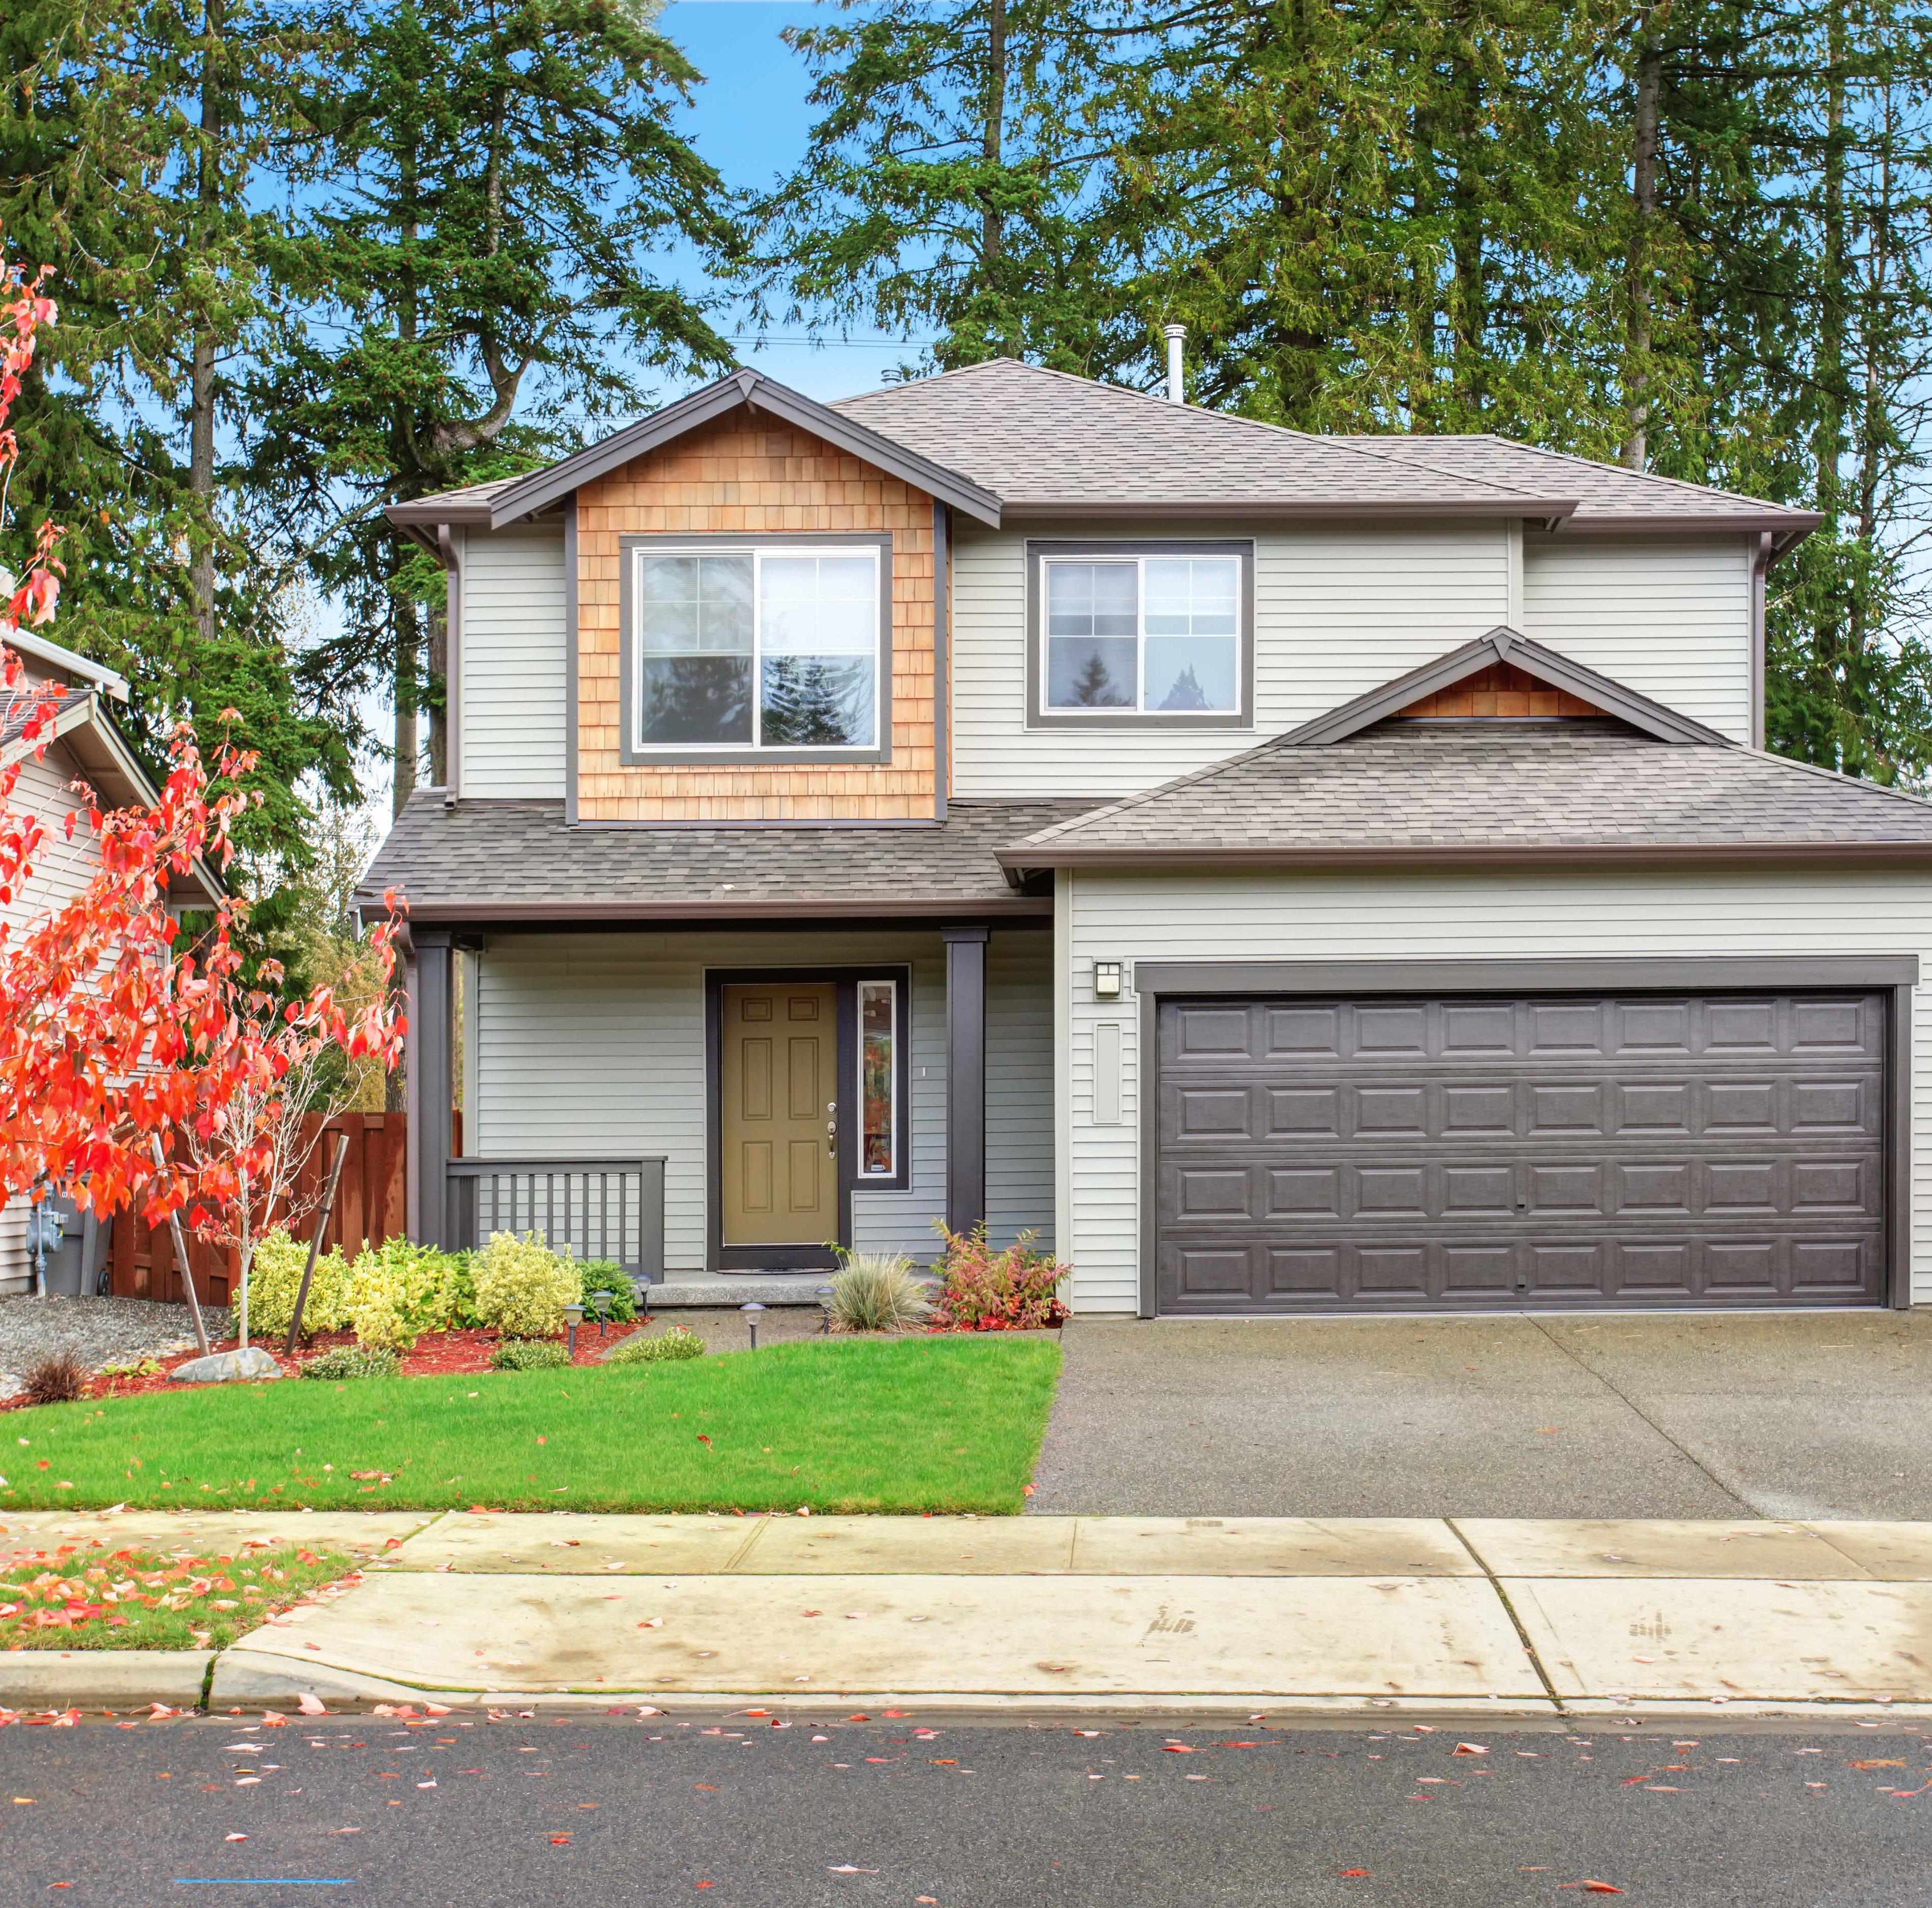 Spruce Up Your Fall Curb Appeal With These Helpful Tips